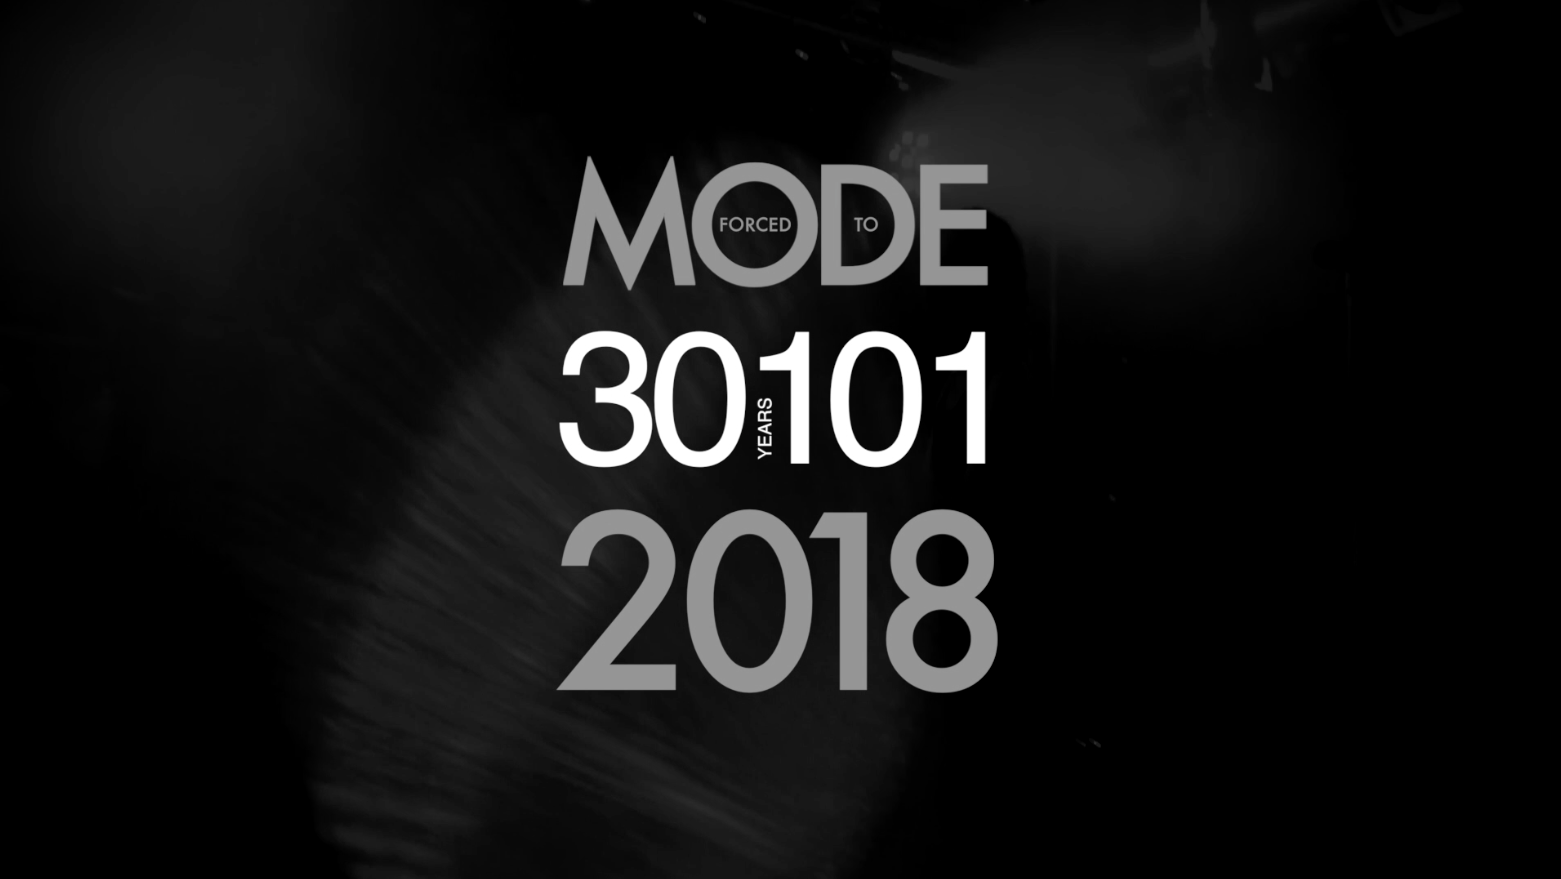 forced to mode band